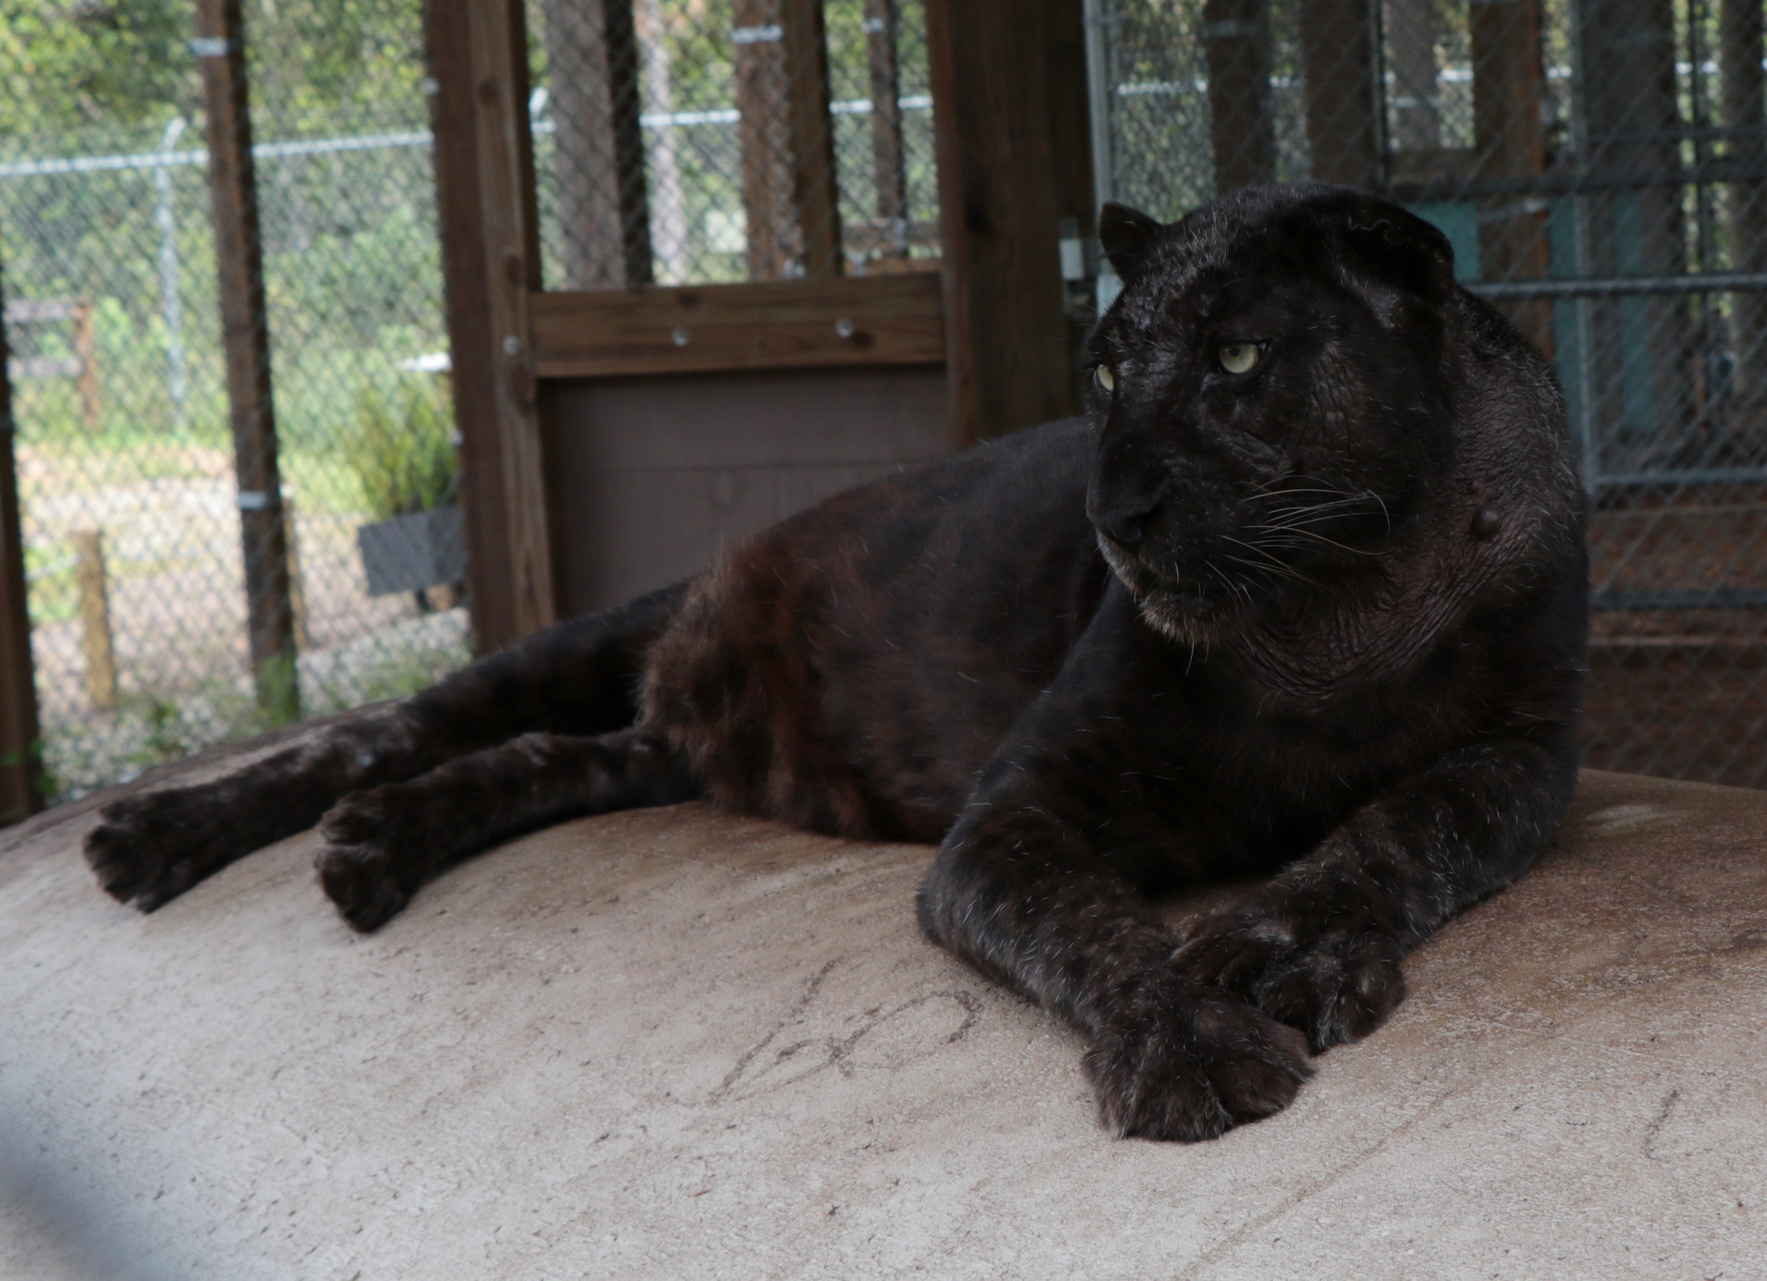 To raise $2020 in honor of Gypsy's 20th birthday  image